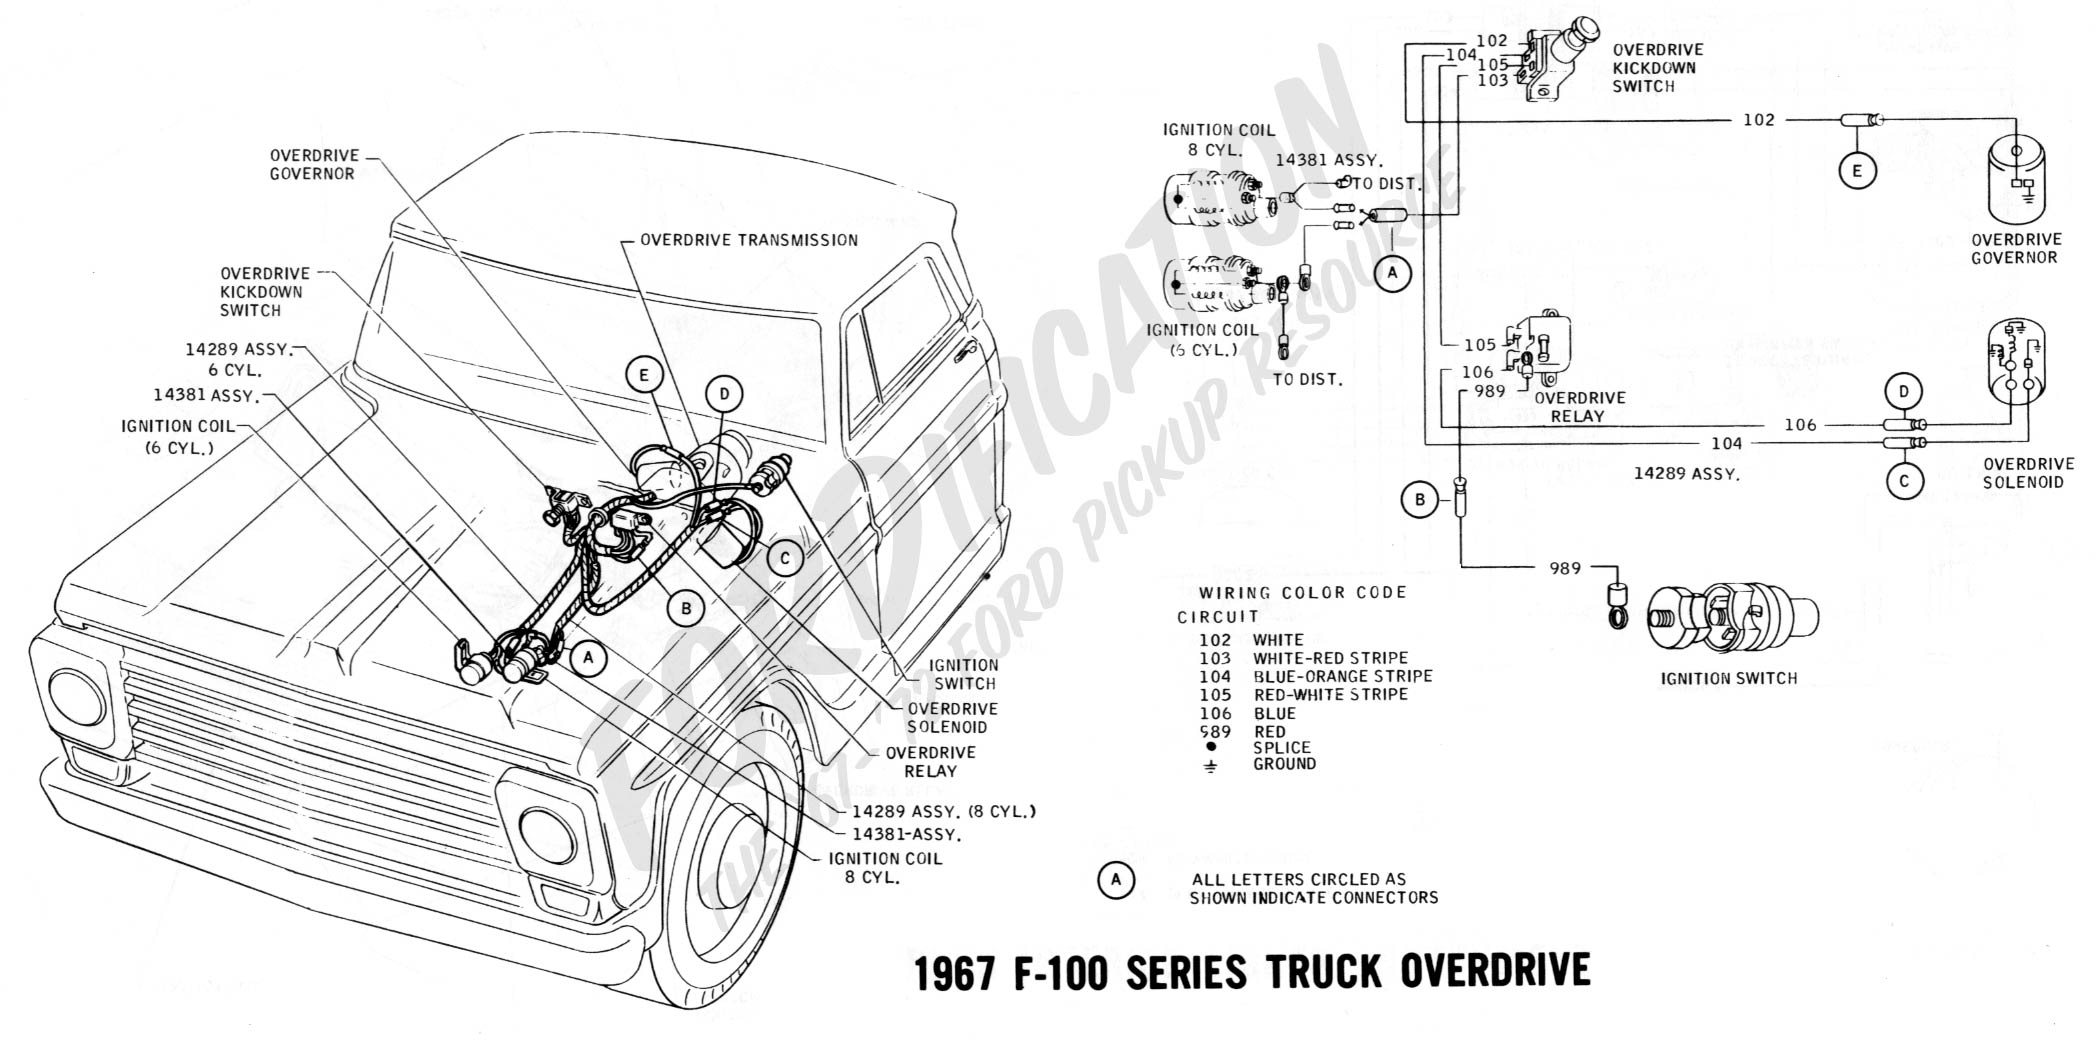 [XOTG_4463]  67 F100 Fuse Box Three Pole Toggle Switch Wiring Diagram -  hazzard.astrea-construction.fr | 1966 Ford Truck Fuse Box |  | Begeboy Wiring Diagram Source - ASTREA CONSTRUCTION